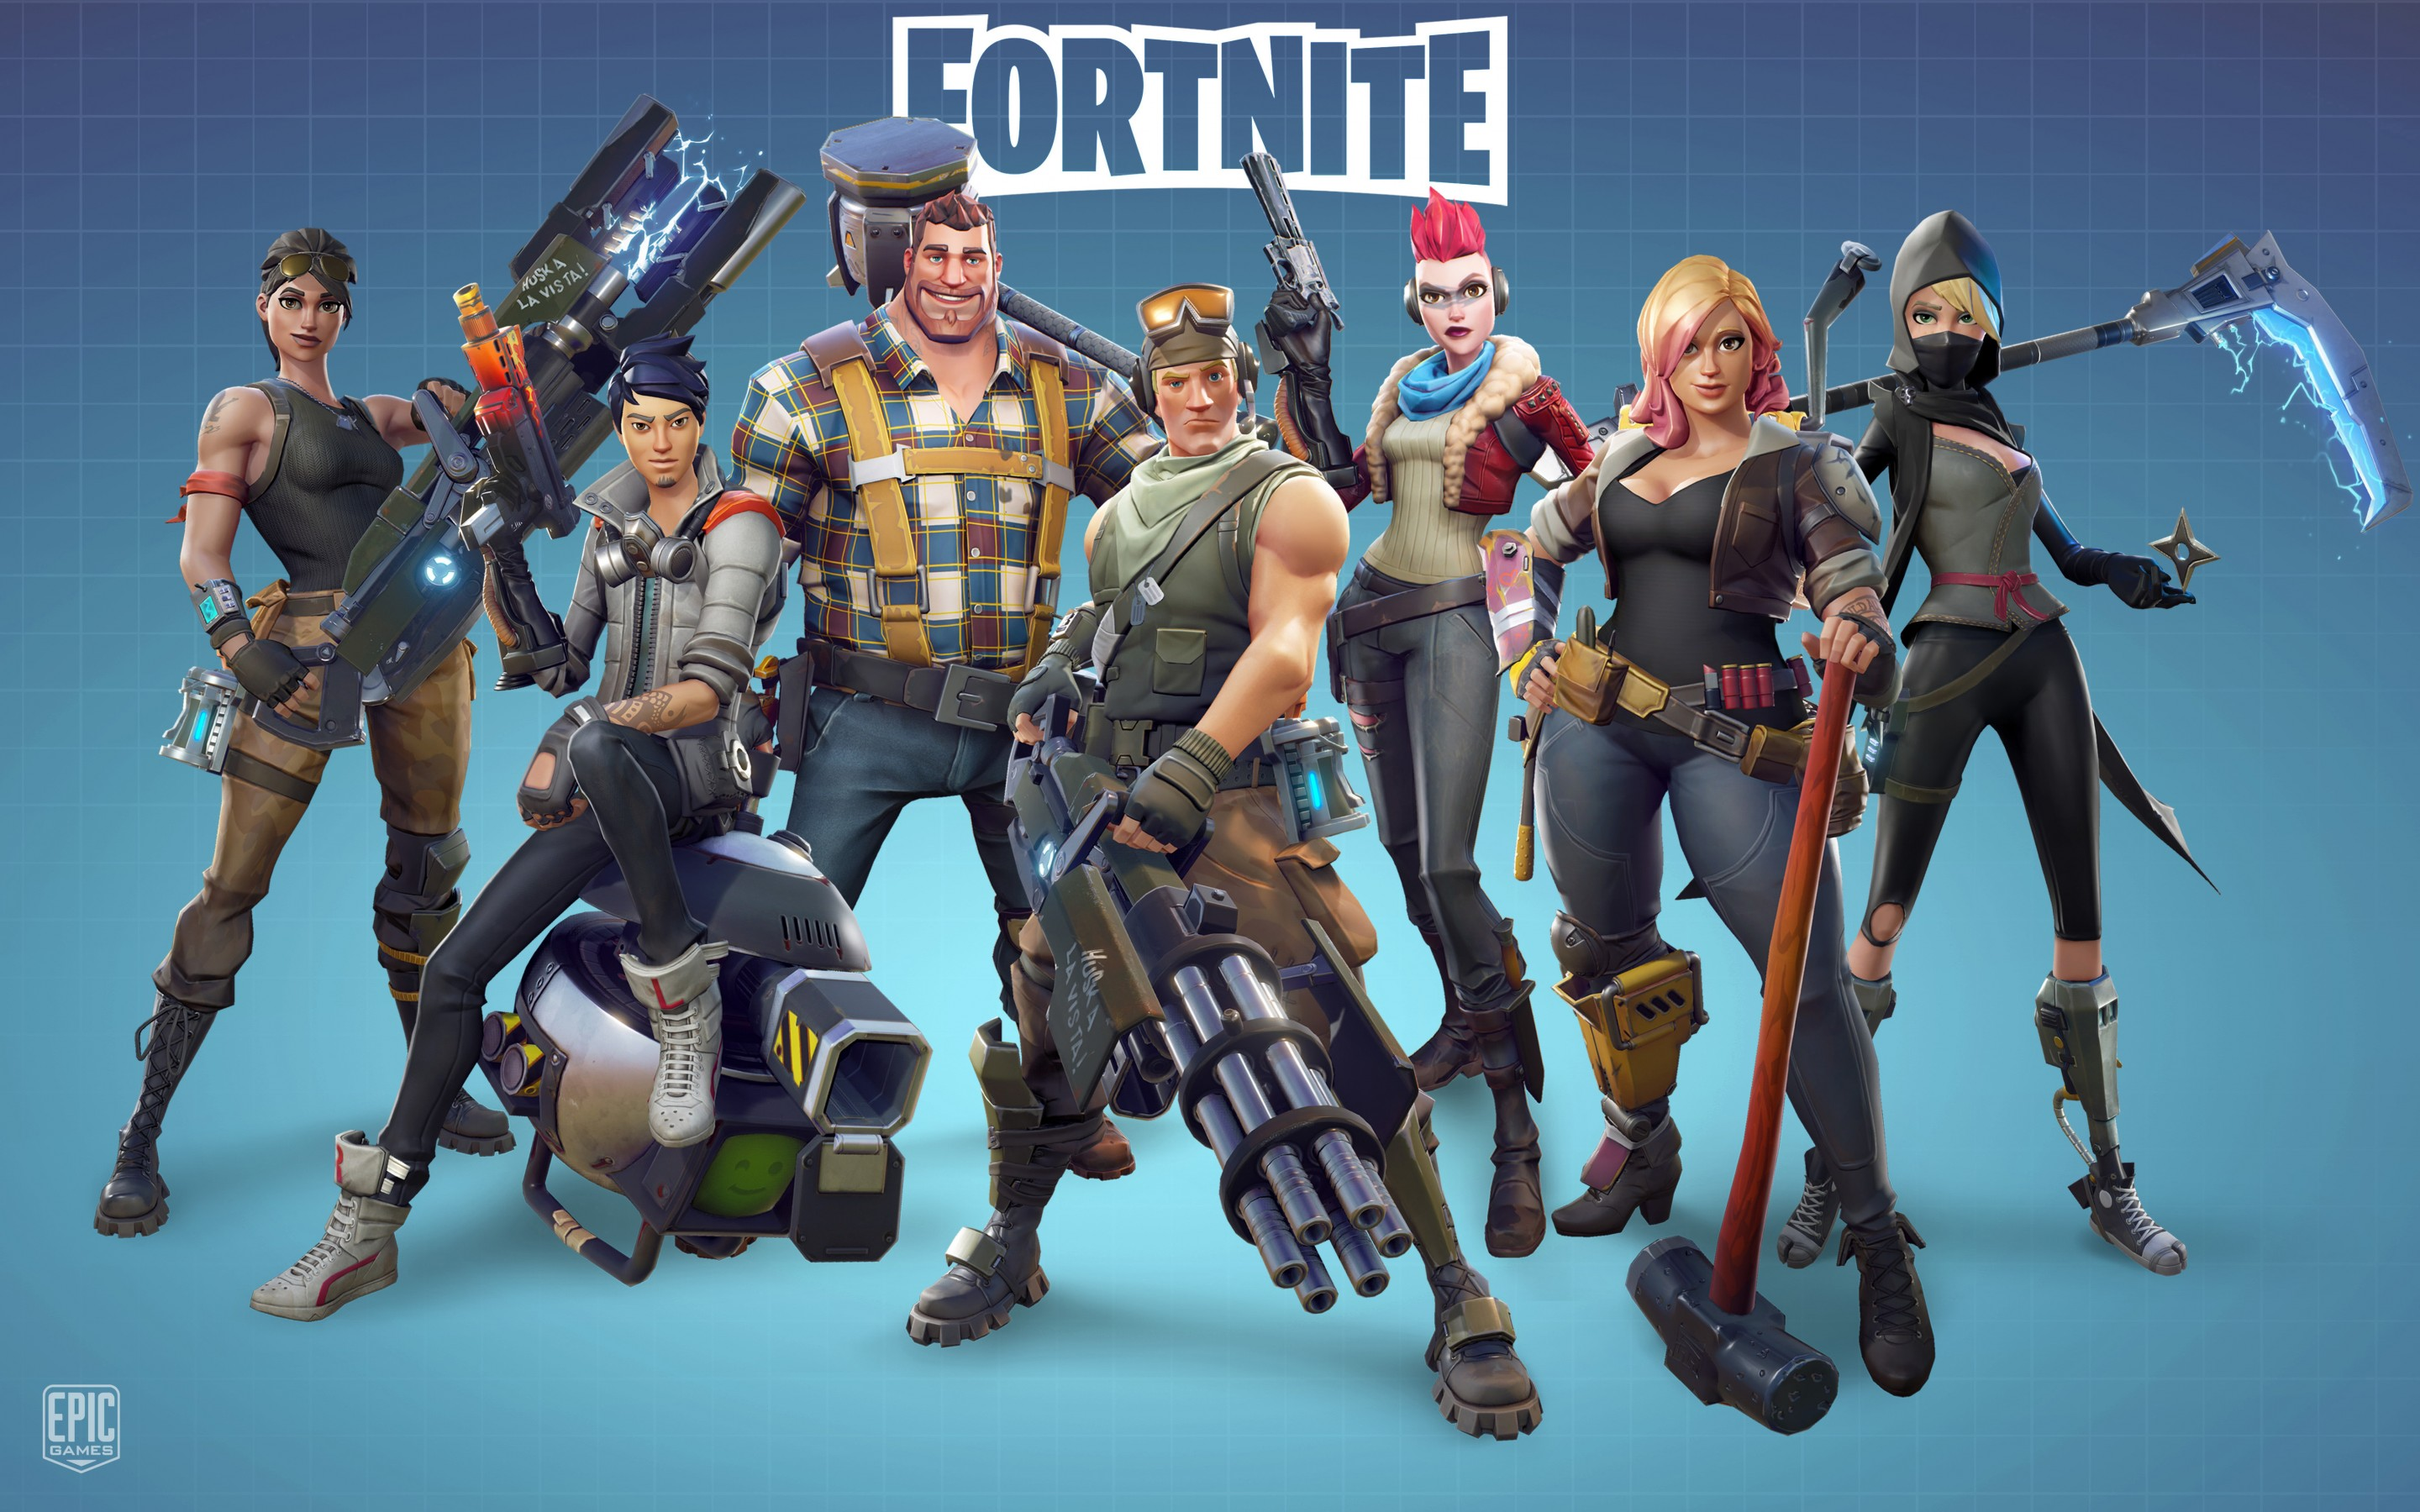 Iphone X Fortnite Wallpapers Fortnite Game 2017 5k Wallpapers Hd Wallpapers Id 21004